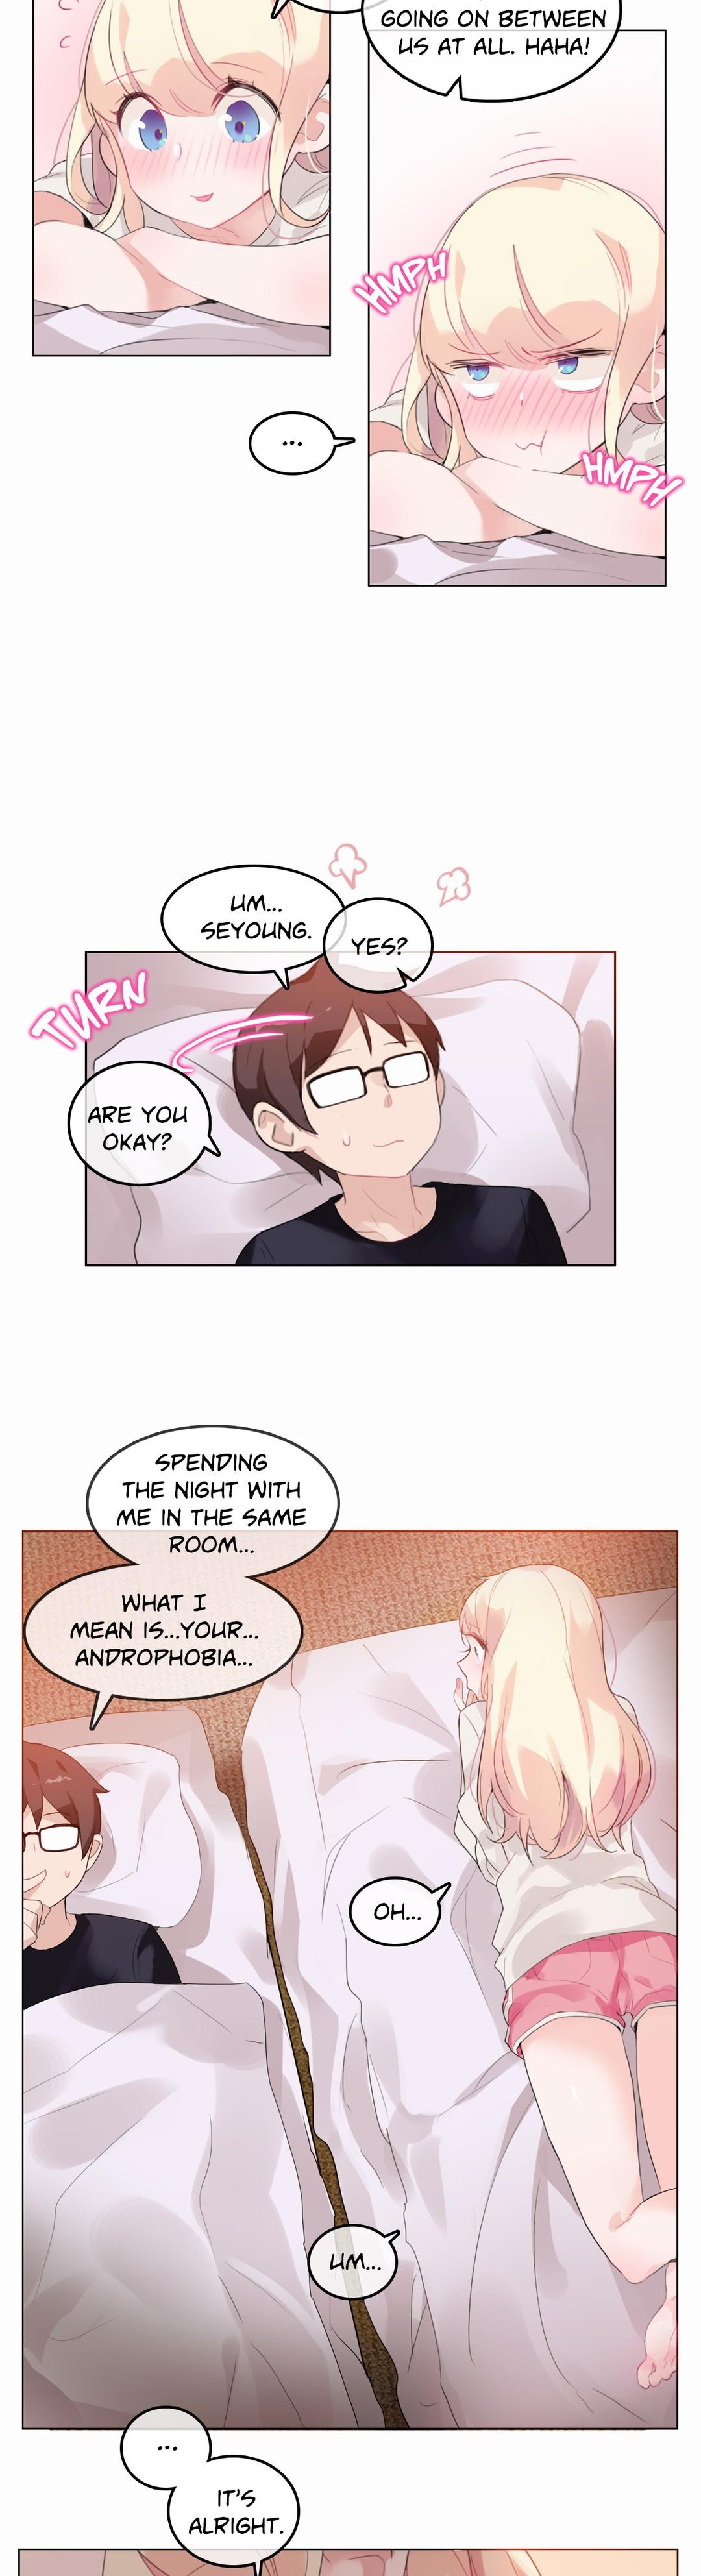 A Pervert's Daily Life Ch. 1-34 440